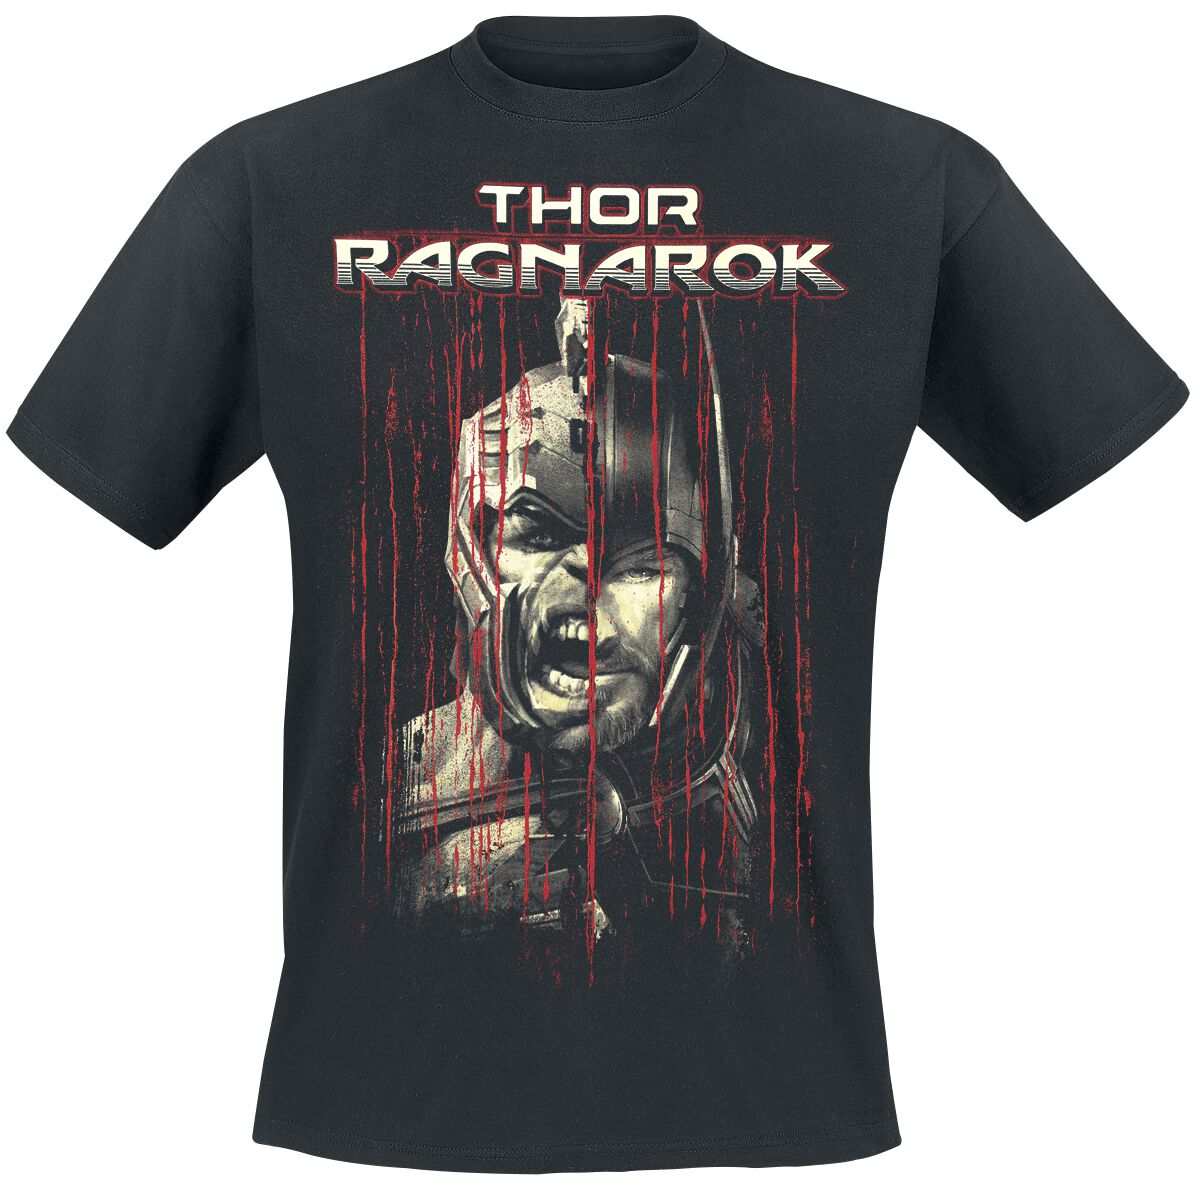 Image of   Thor Ragnarok - Bloodrain T-Shirt sort